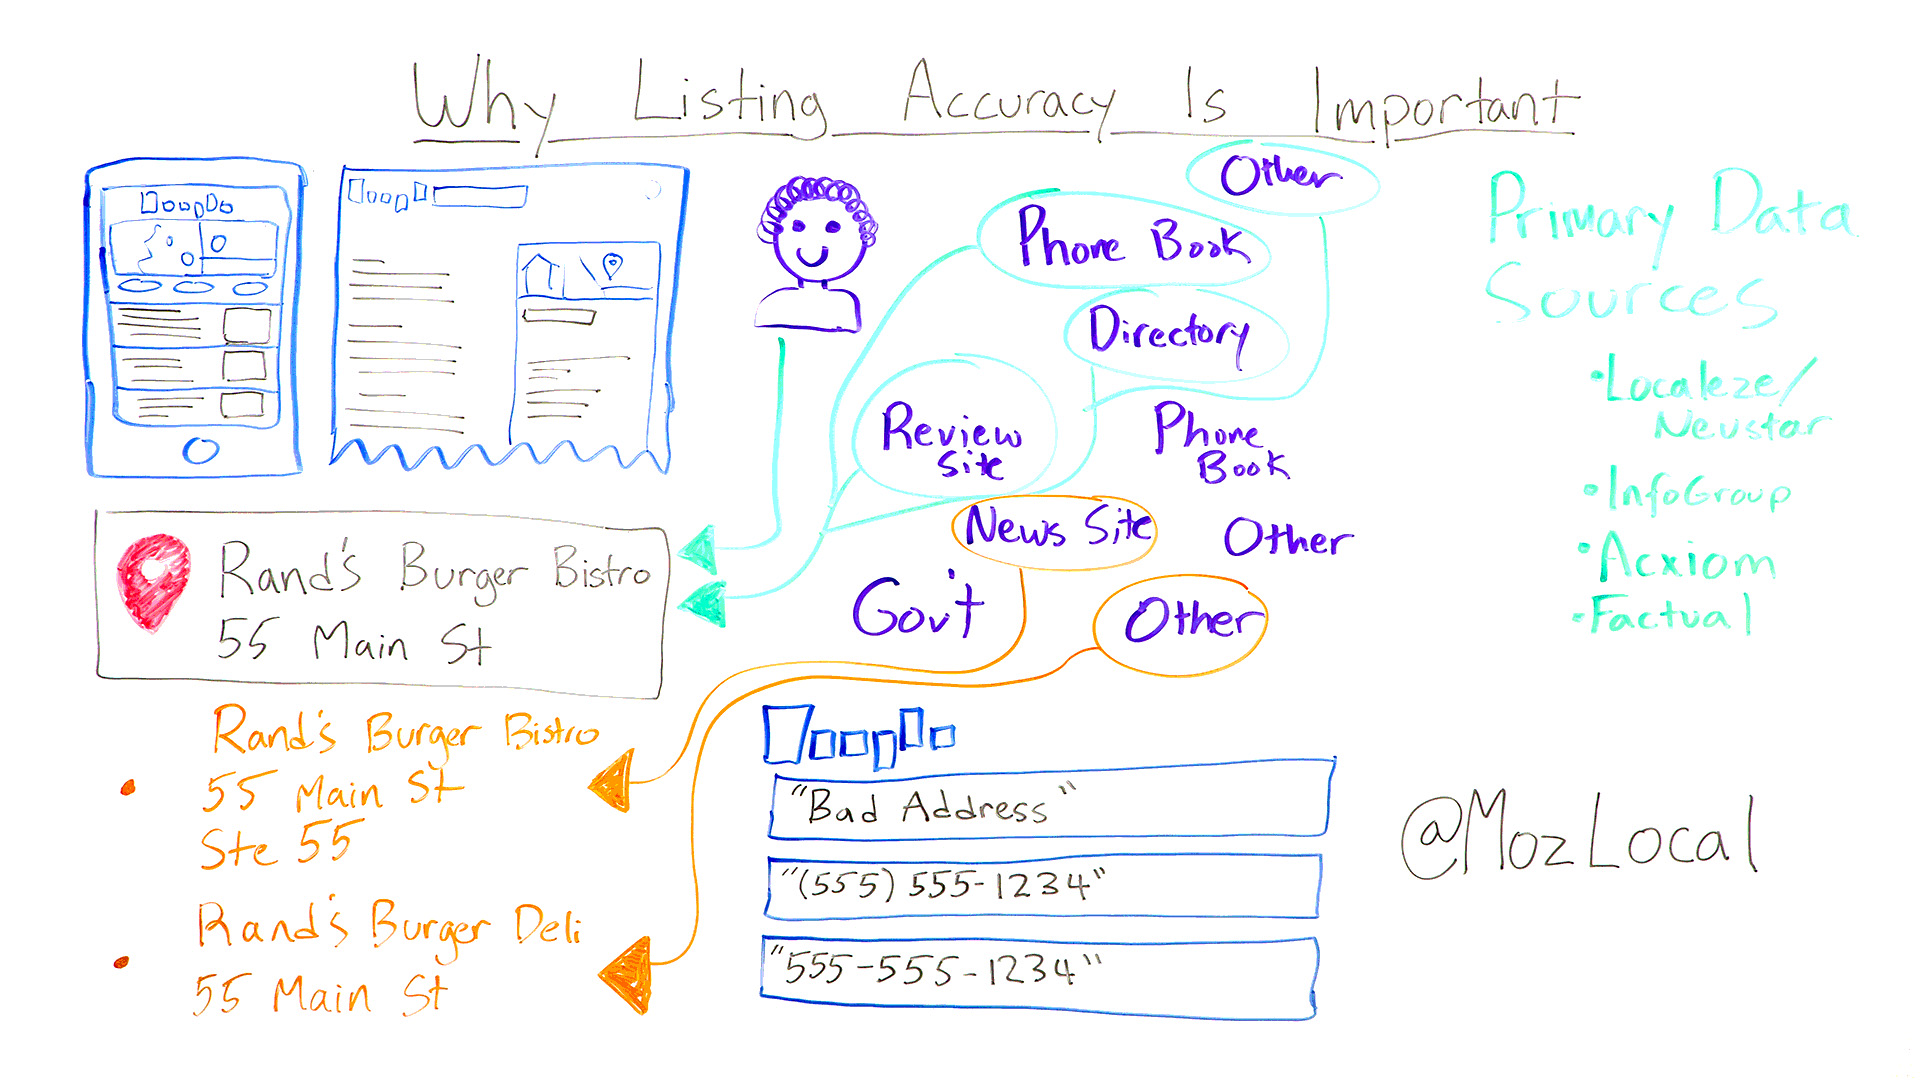 Why is Listing Accuracy so important?